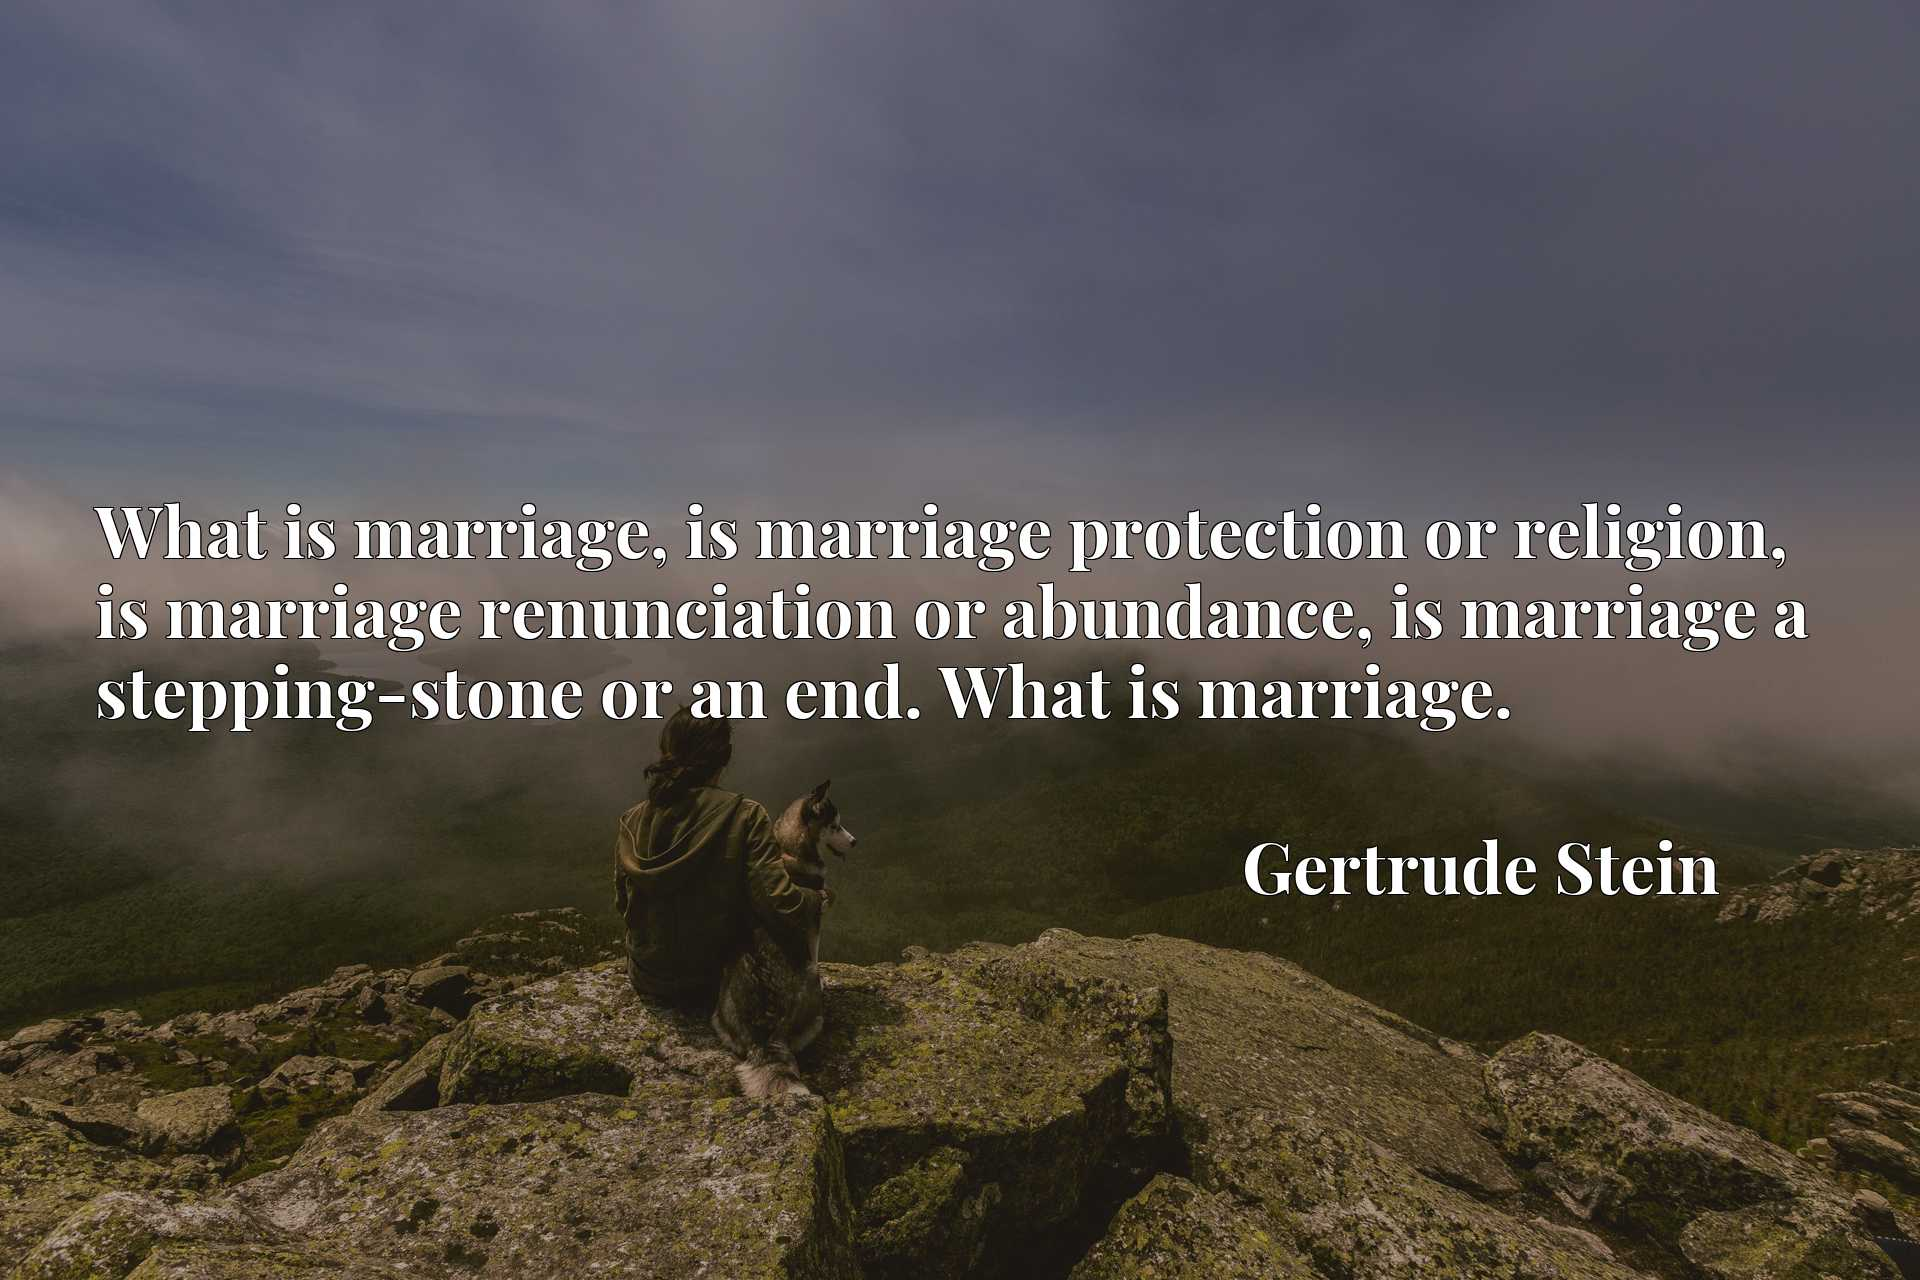 What is marriage, is marriage protection or religion, is marriage renunciation or abundance, is marriage a stepping-stone or an end. What is marriage.